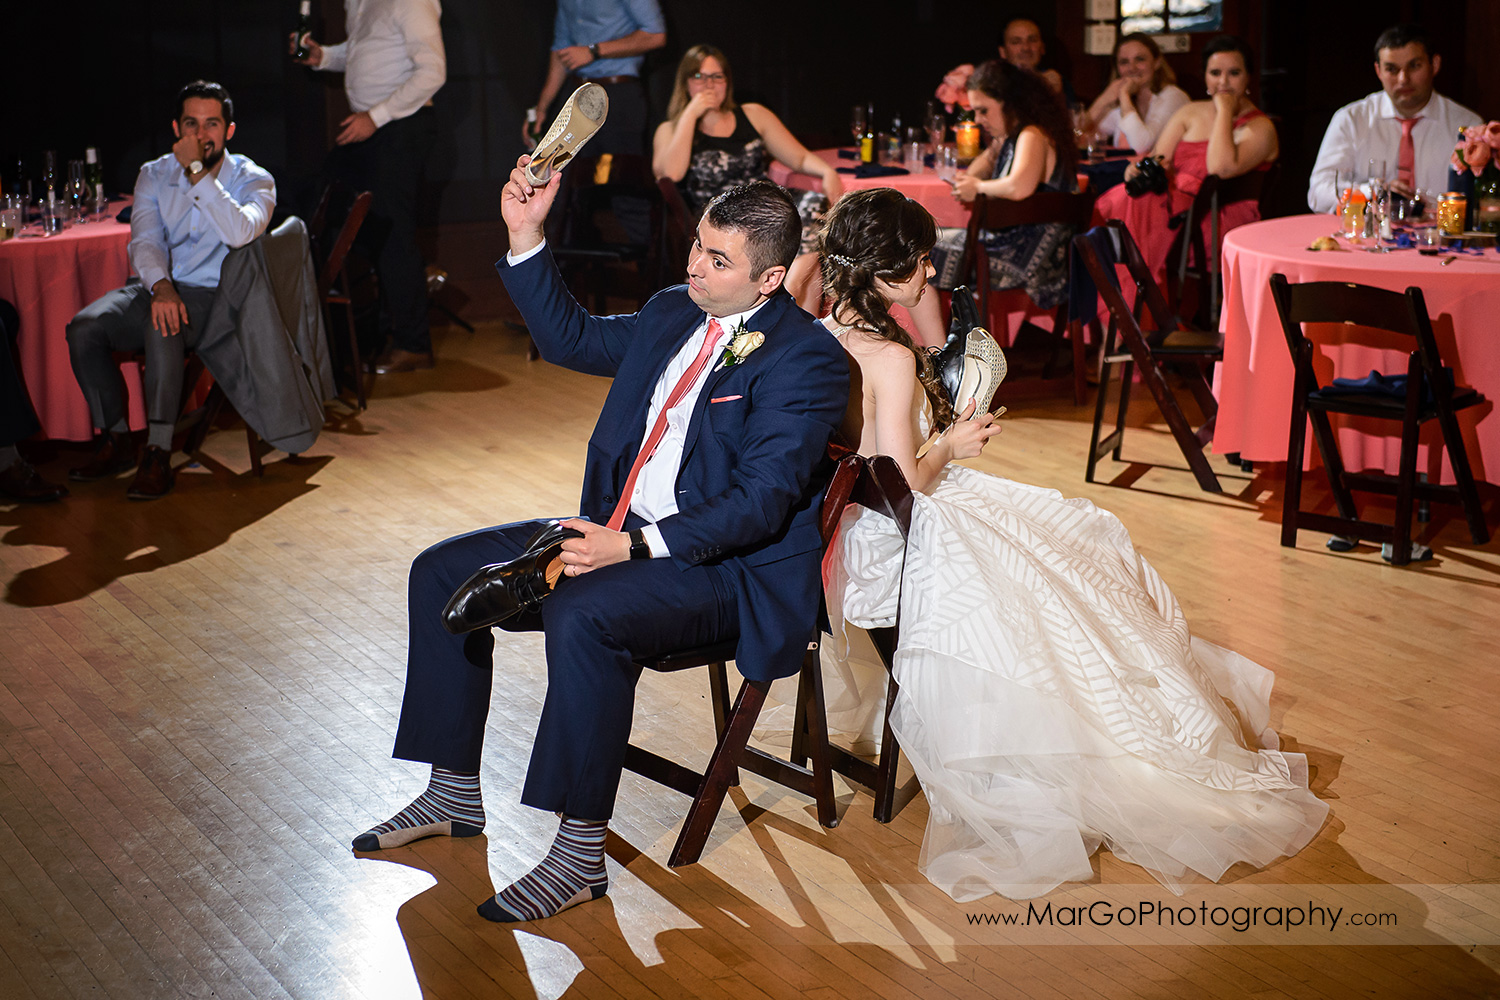 bride and groom playing shoe game during wedding reception at Saratoga Foothill Club